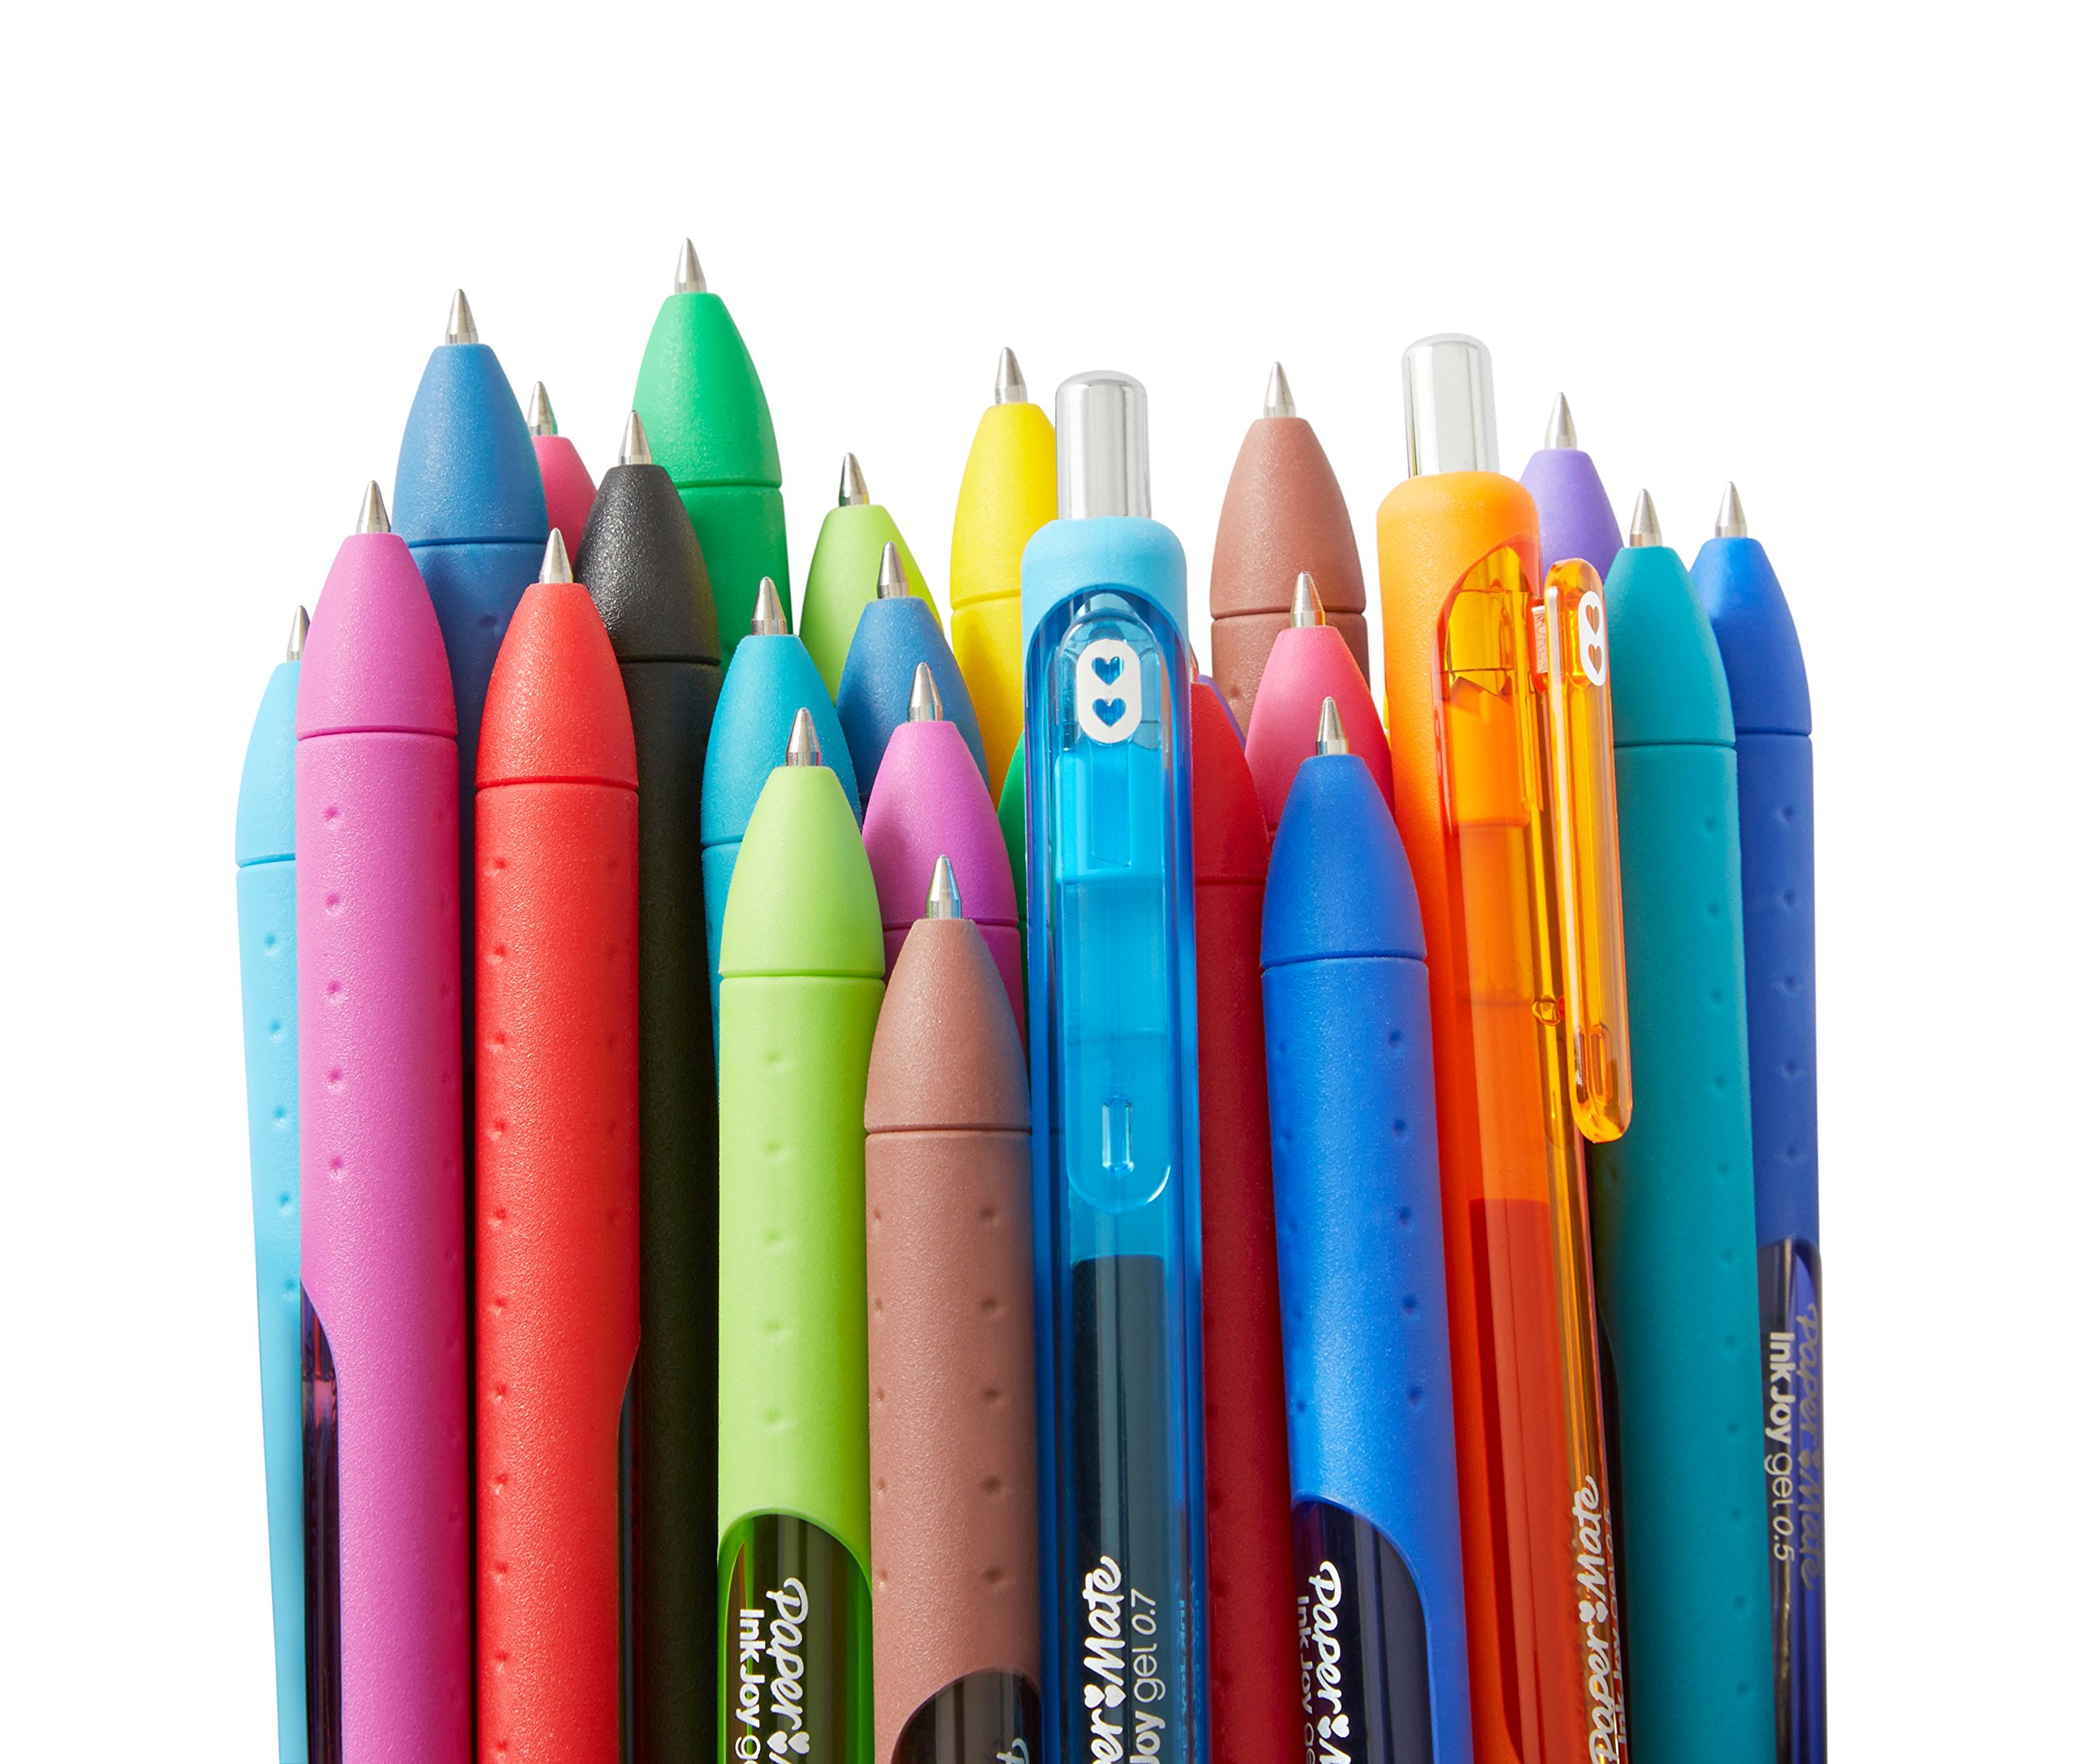 Paper Mate 2003997 InkJoy Gel Pens, Medium Point (0.7mm), Assorted Colors, 36 Count by Paper Mate (Image #8)